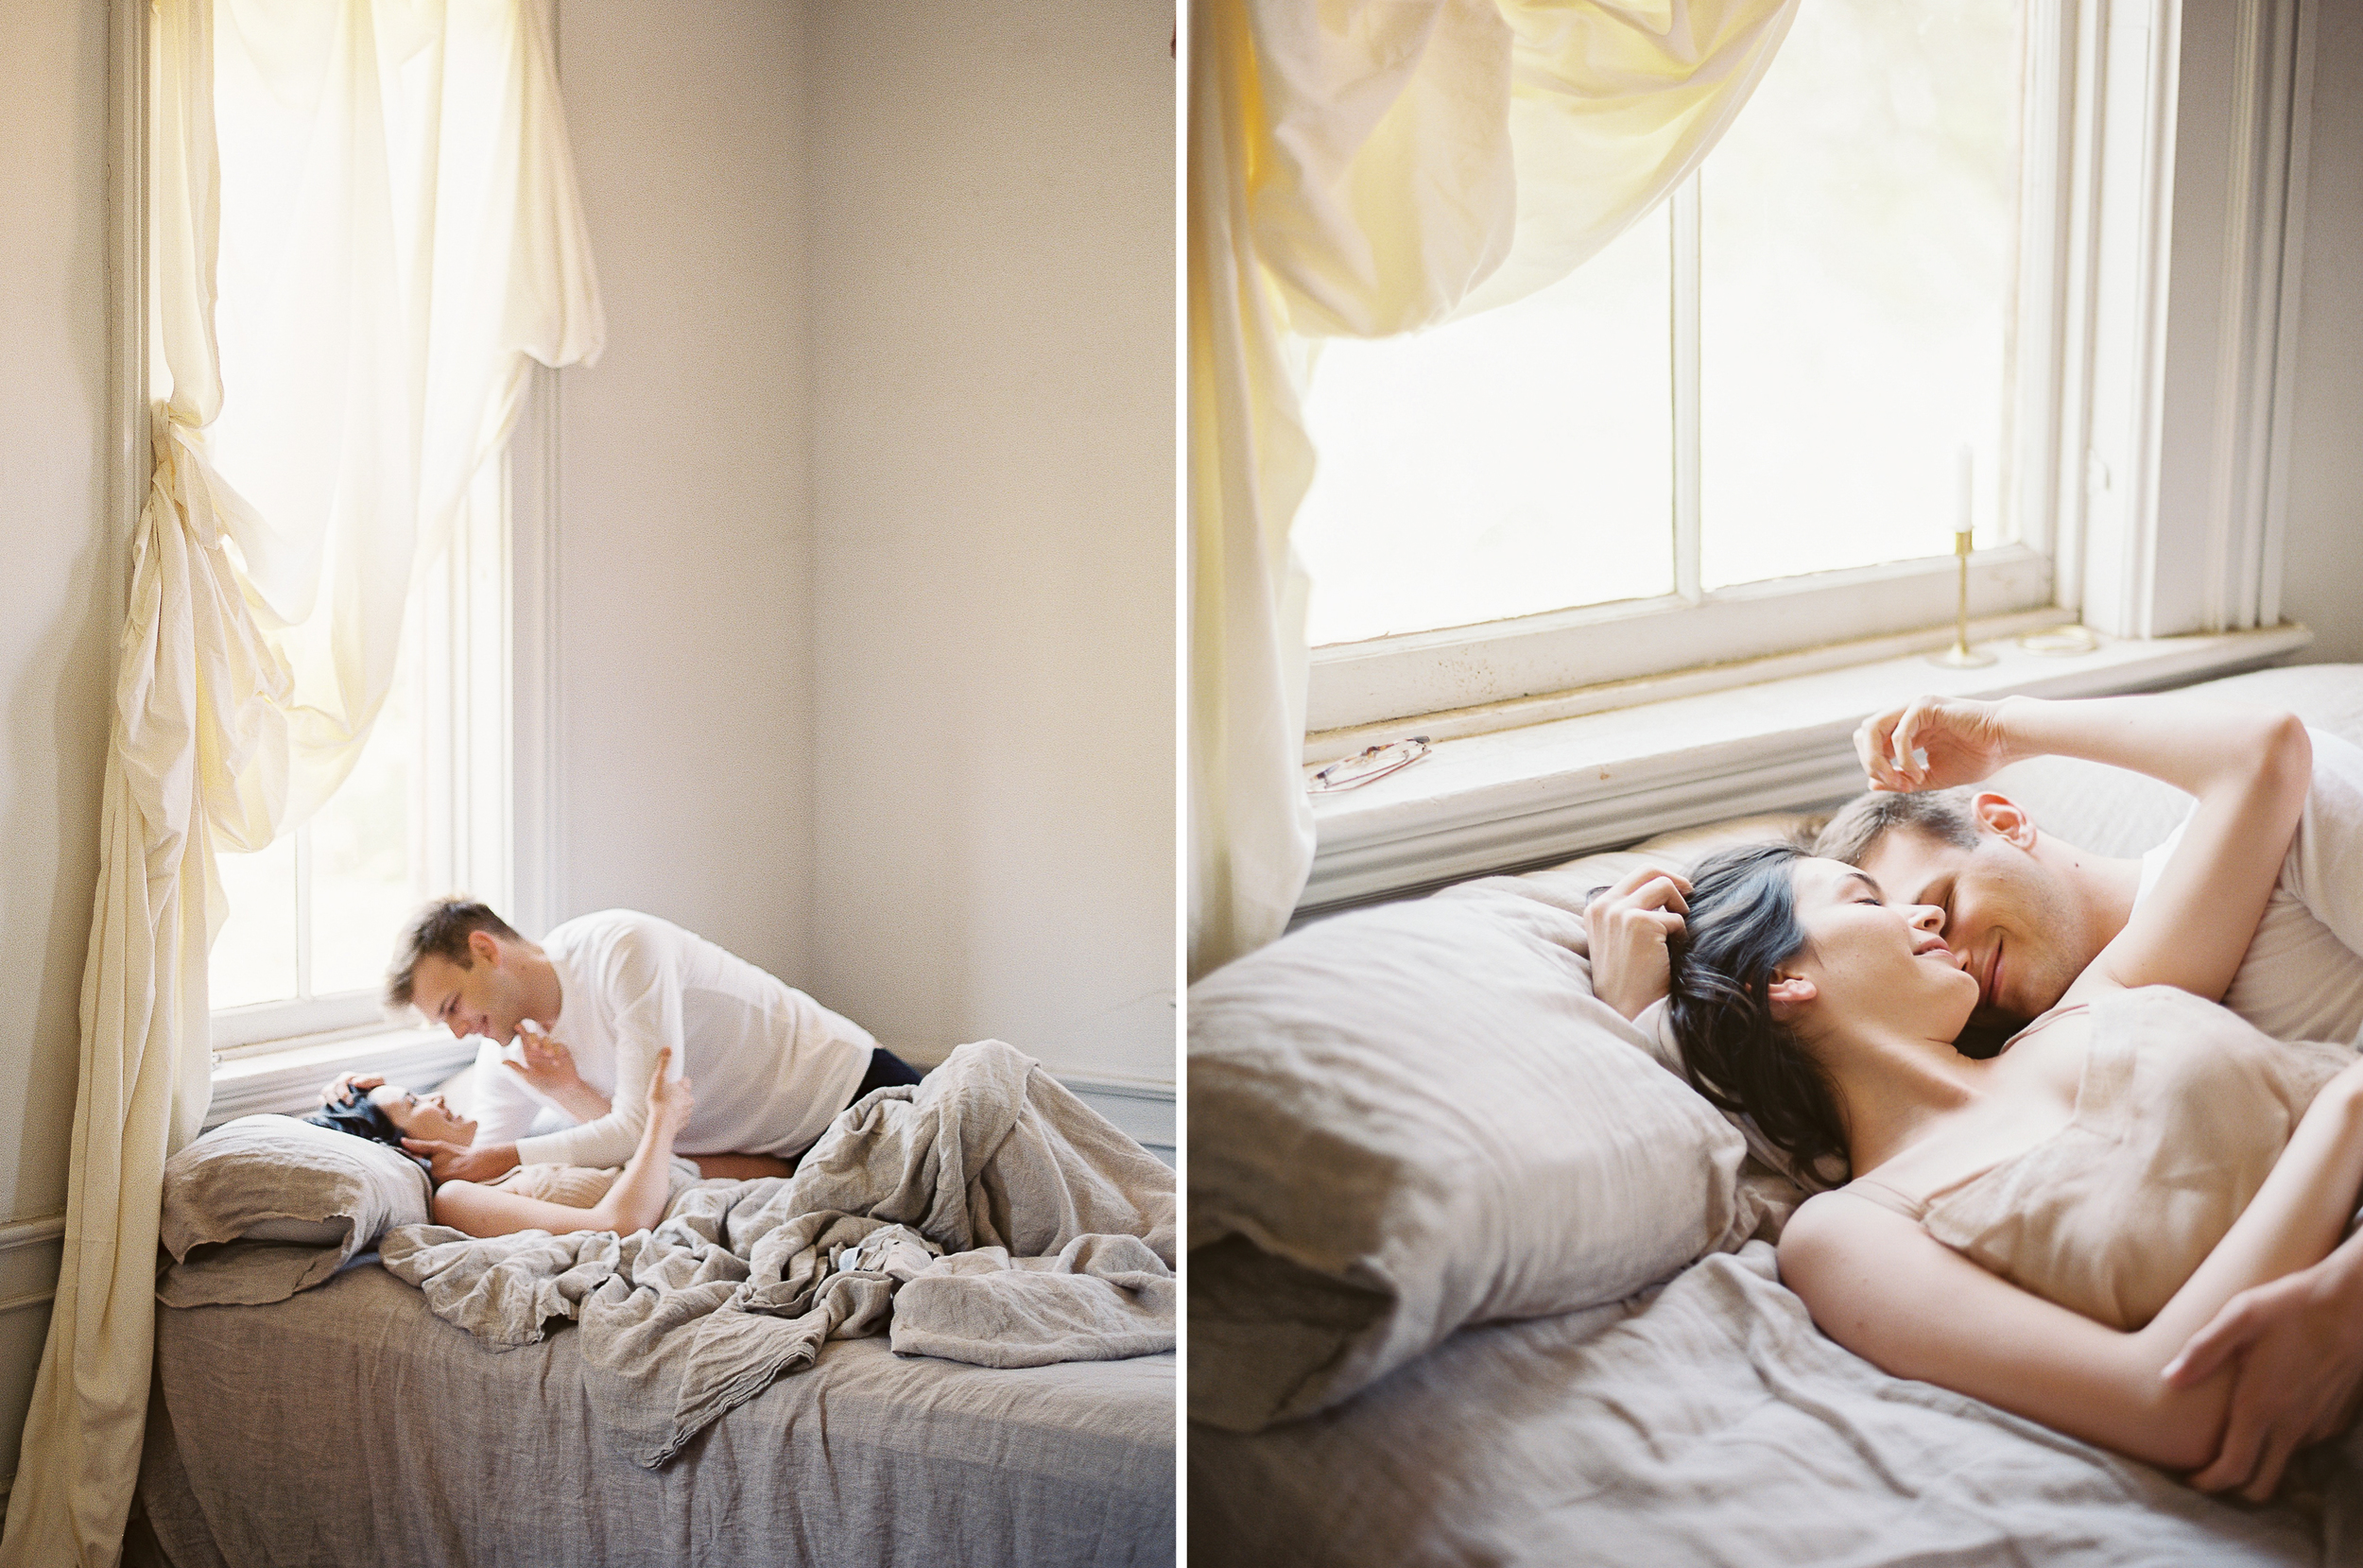 Meghan Mehan Photography - Fine Art Film Photography - San Francisco | Napa | Sonoma | Santa Barbara - Boudoir - 019.jpg